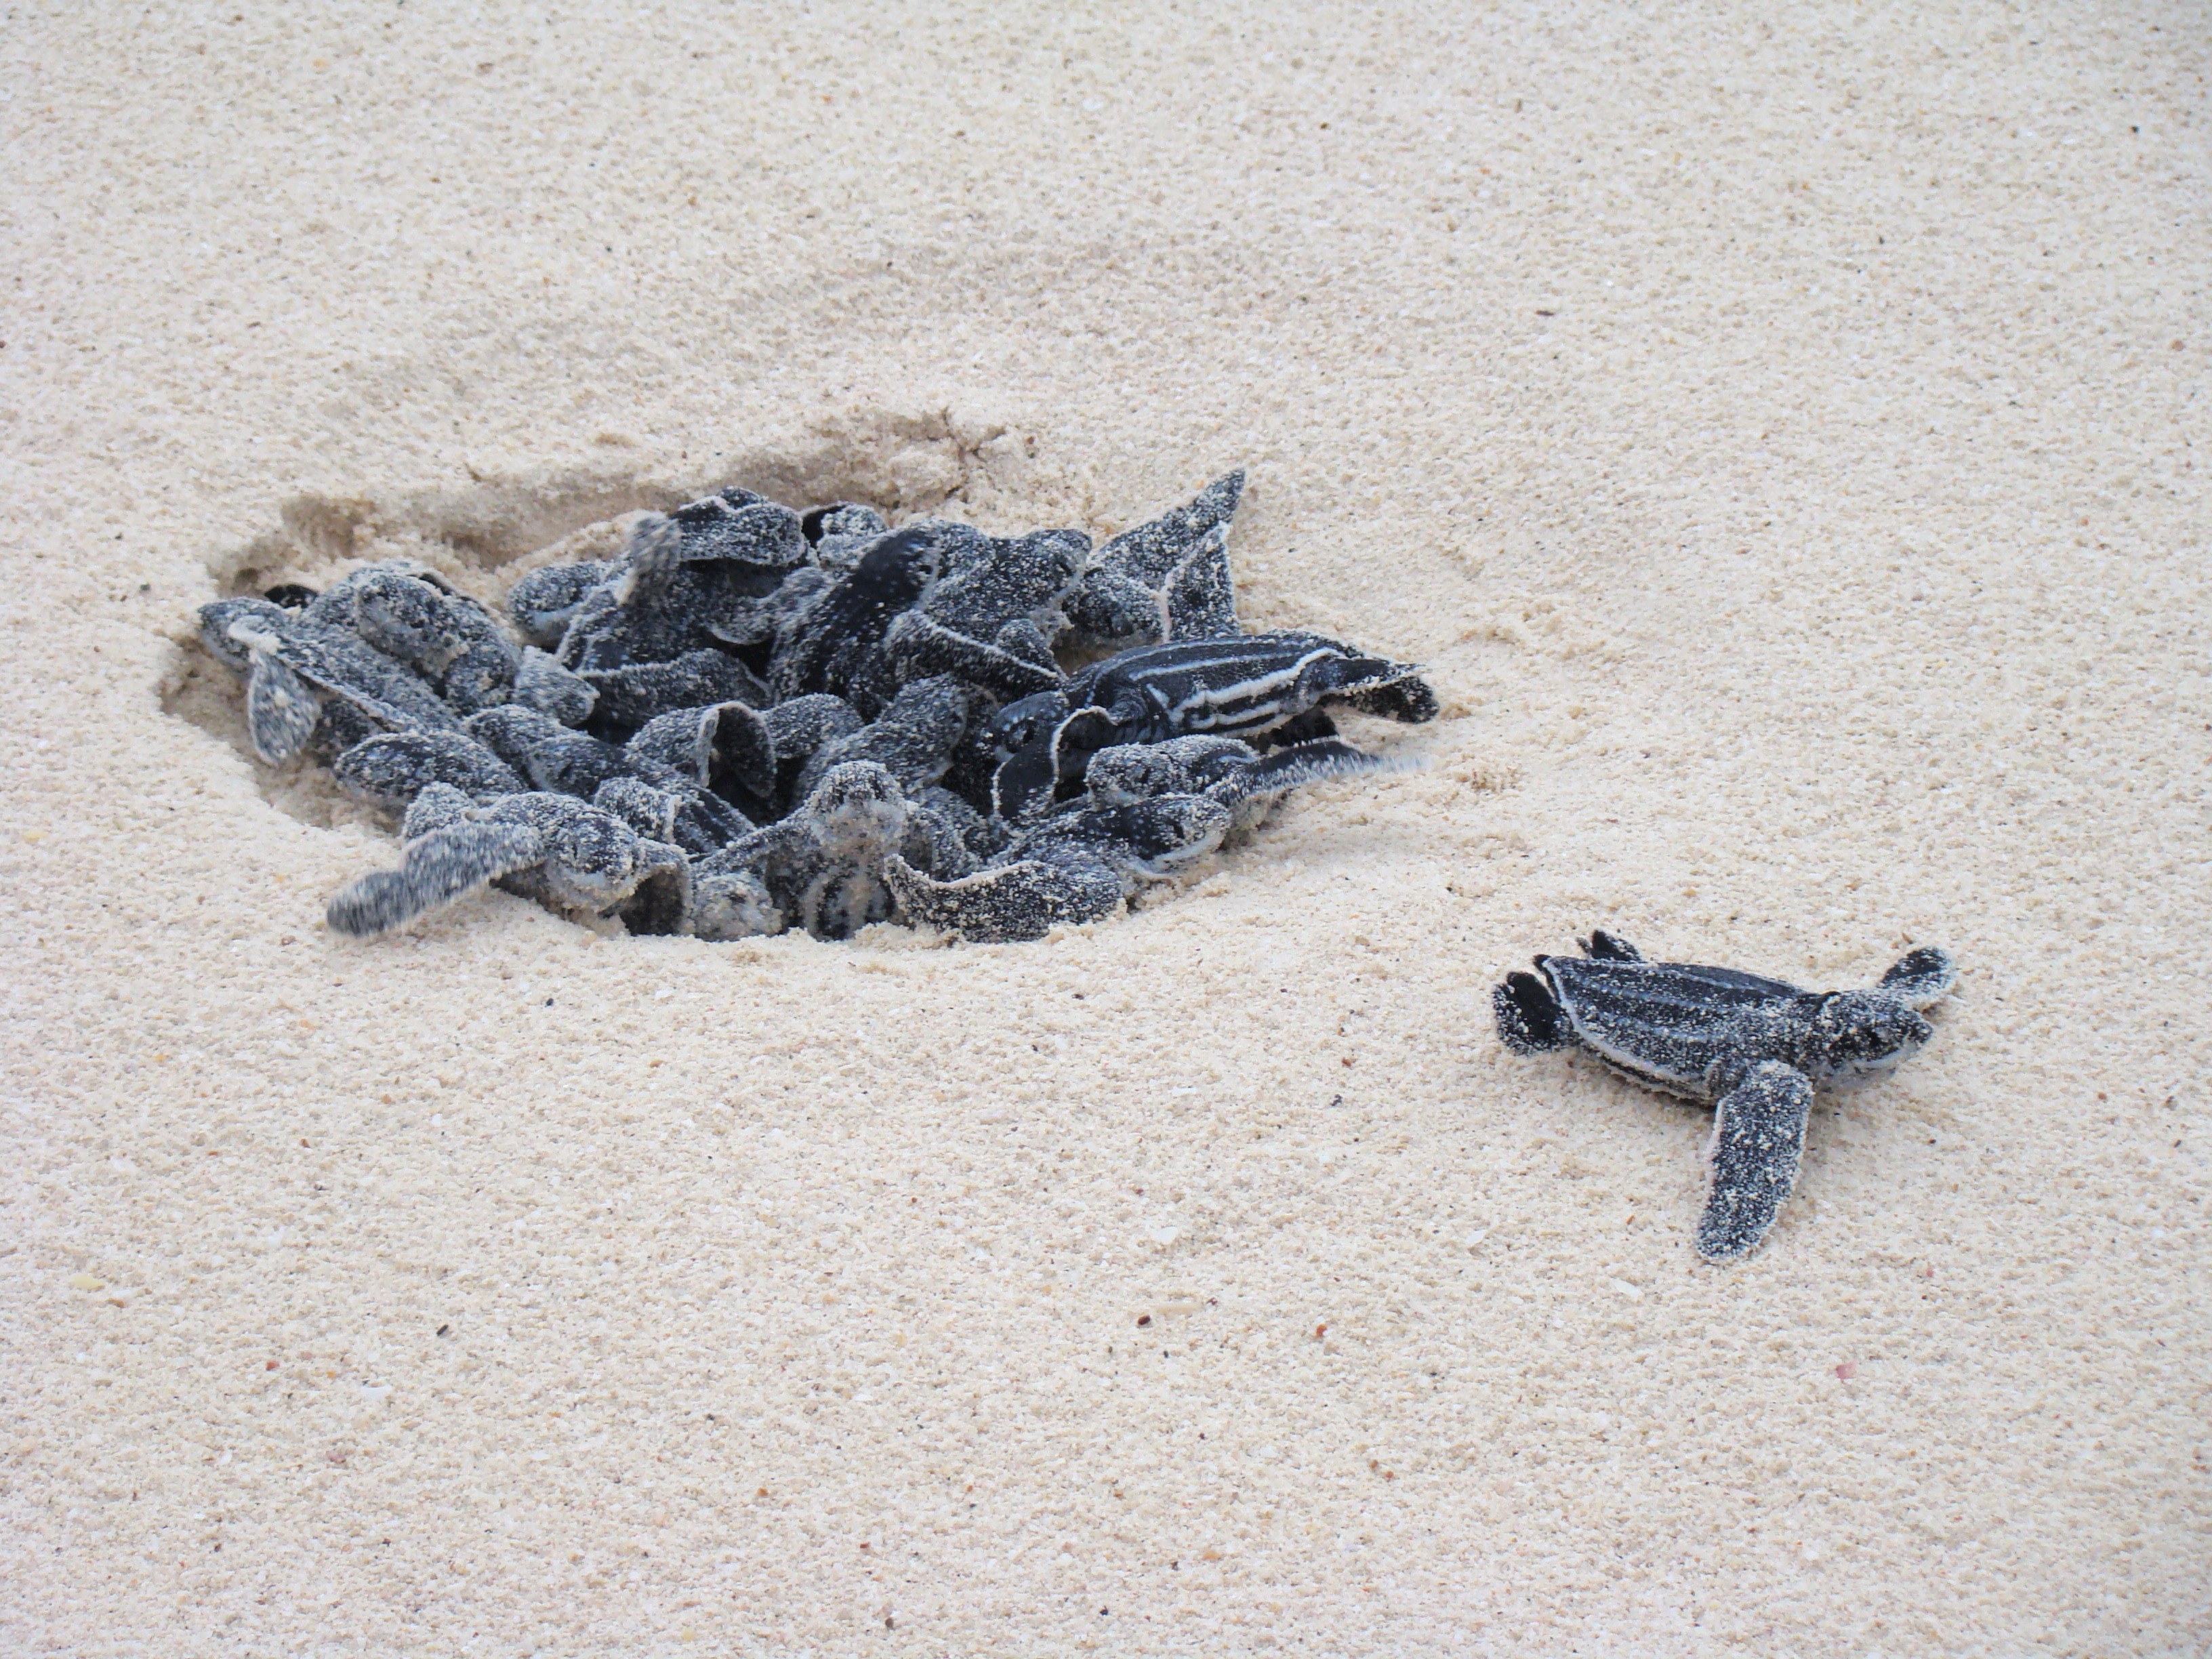 fileleatherback turtle eggs hatching at eagle beach